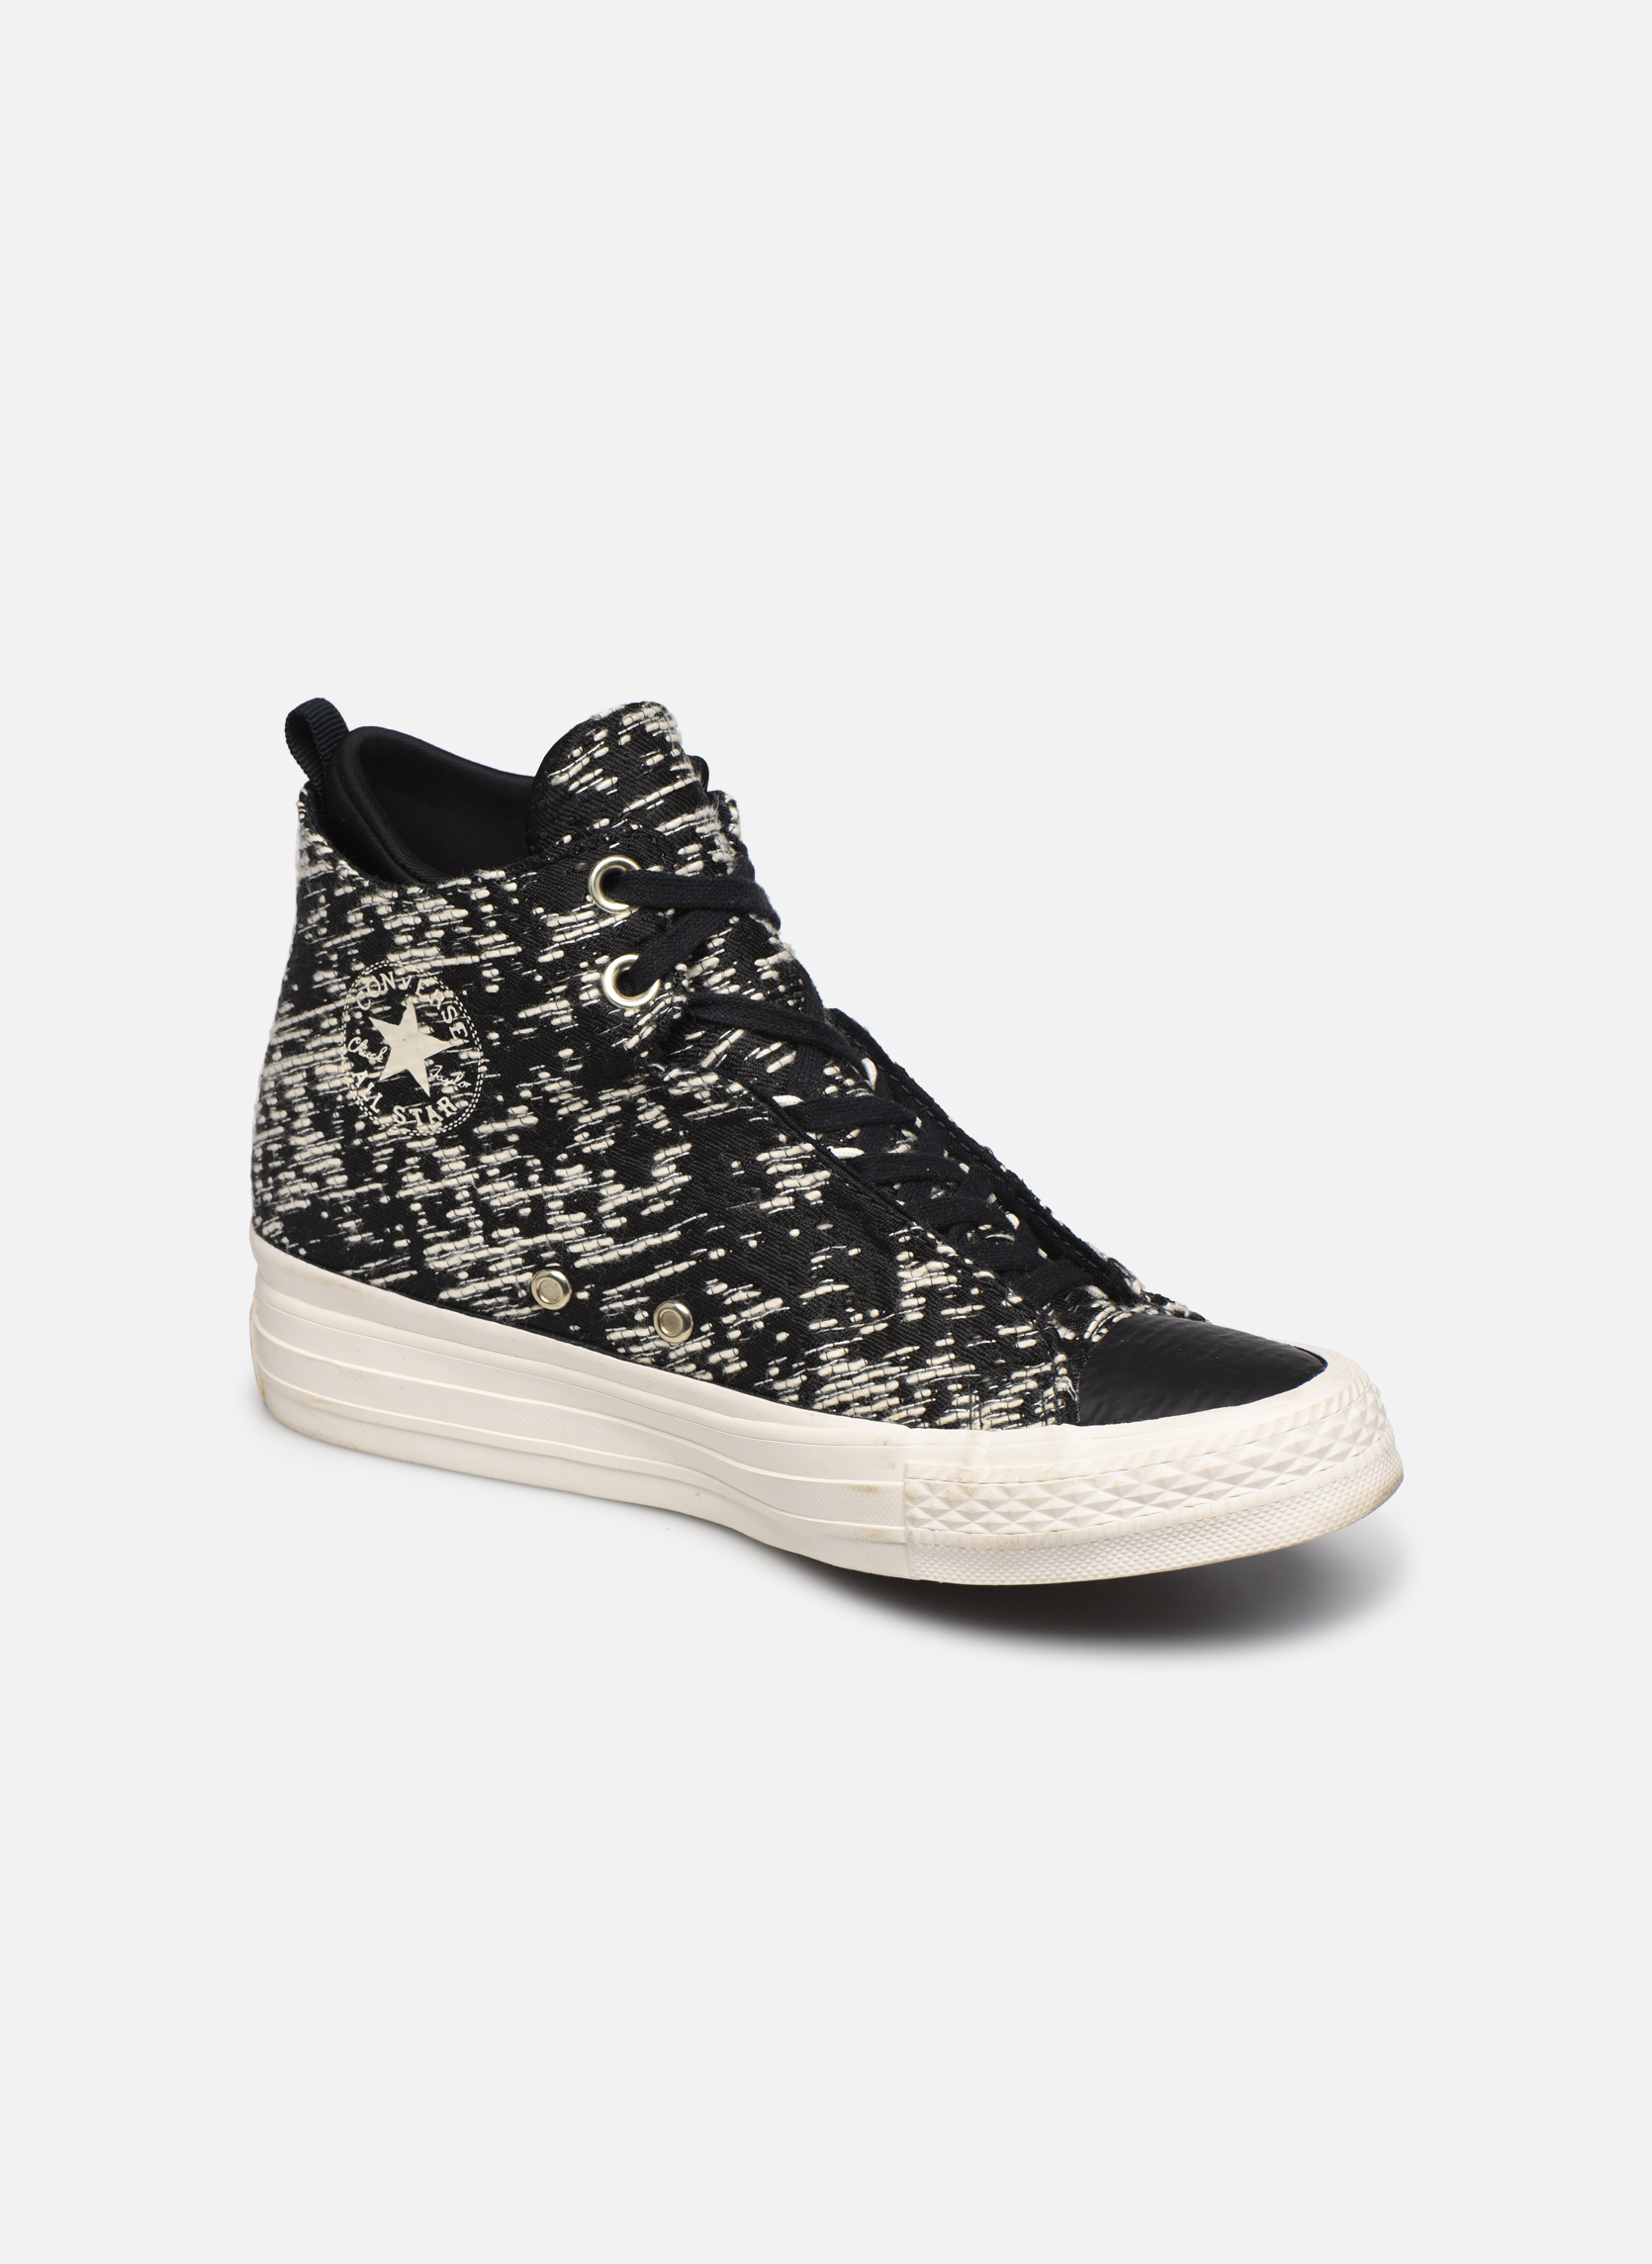 Ctas Selene Winter Knit Mid Black/gold